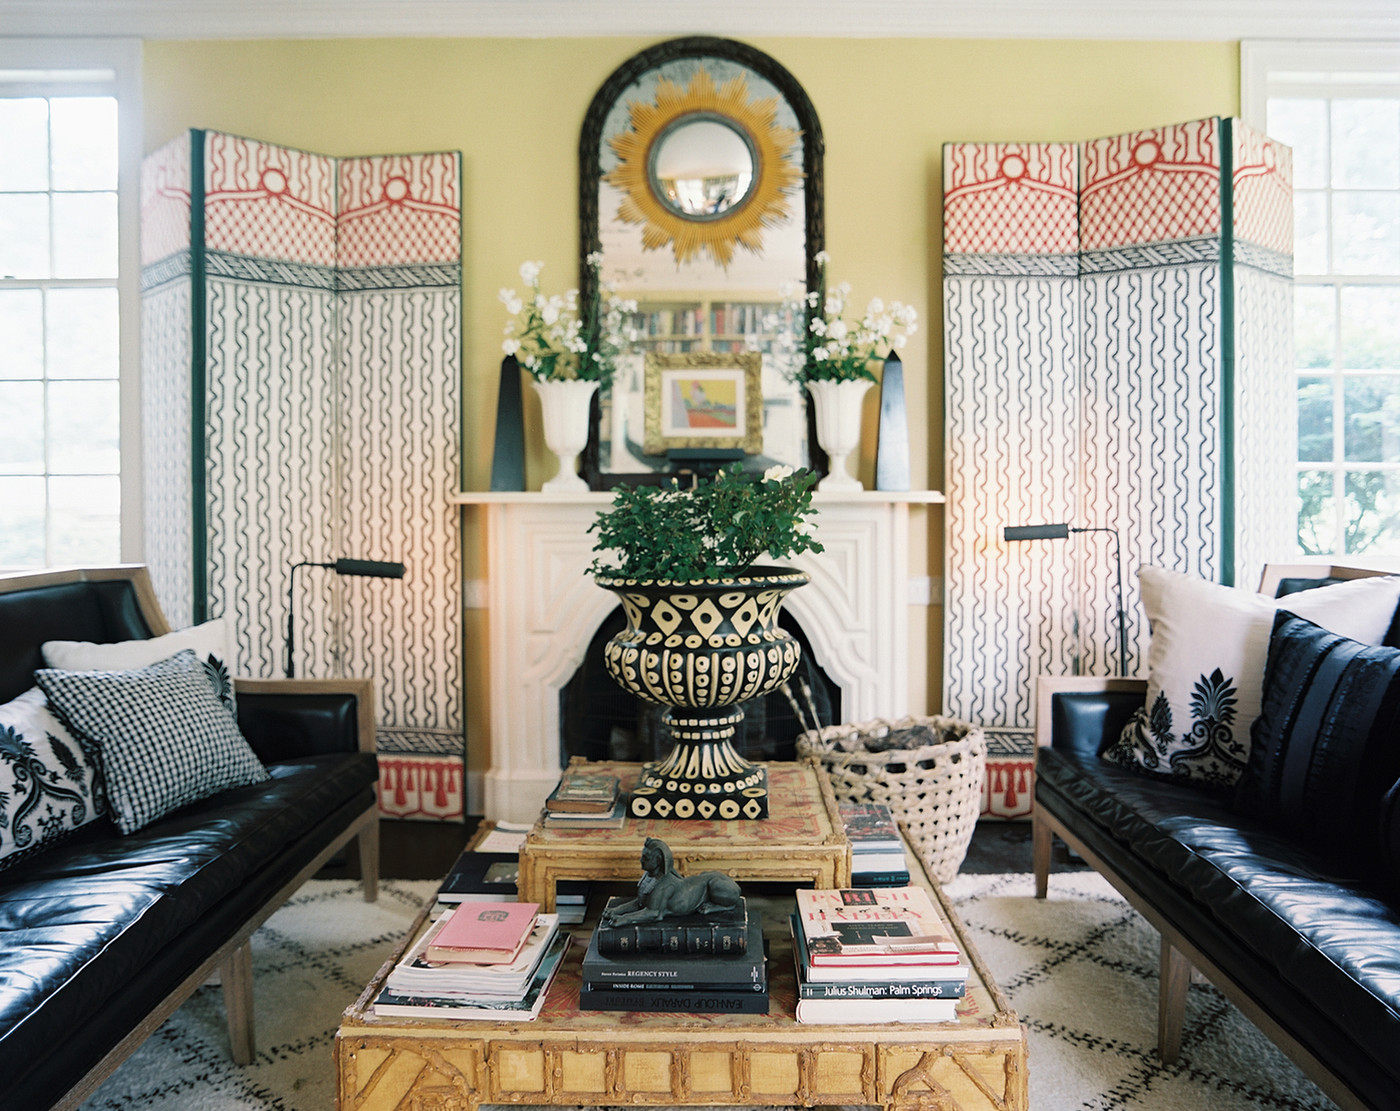 Room Decorative Items Bohemian Living Room Photos 205 Of 248